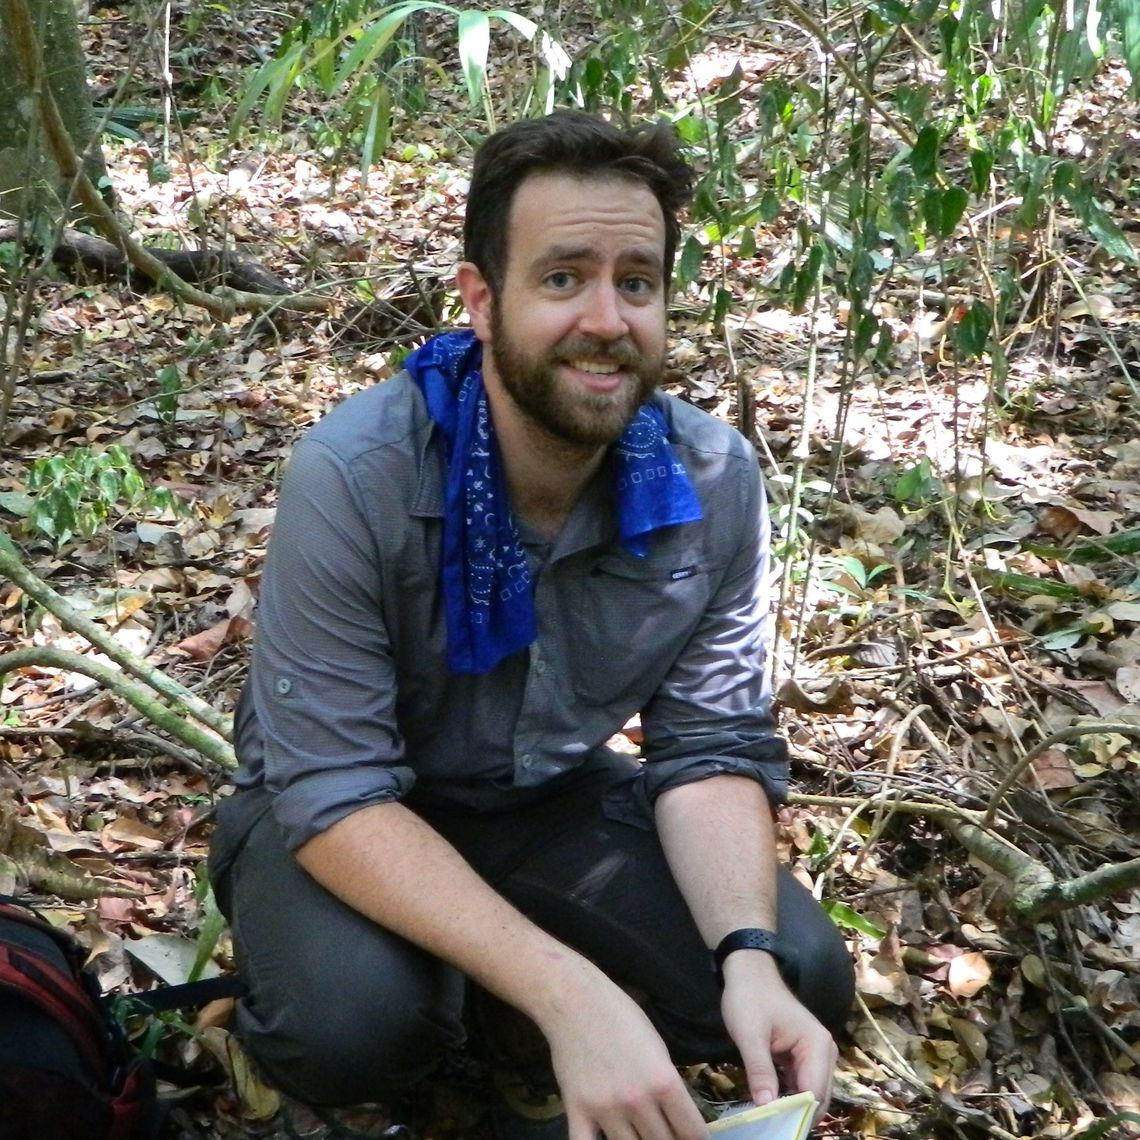 Excavating in the jungles of Belize